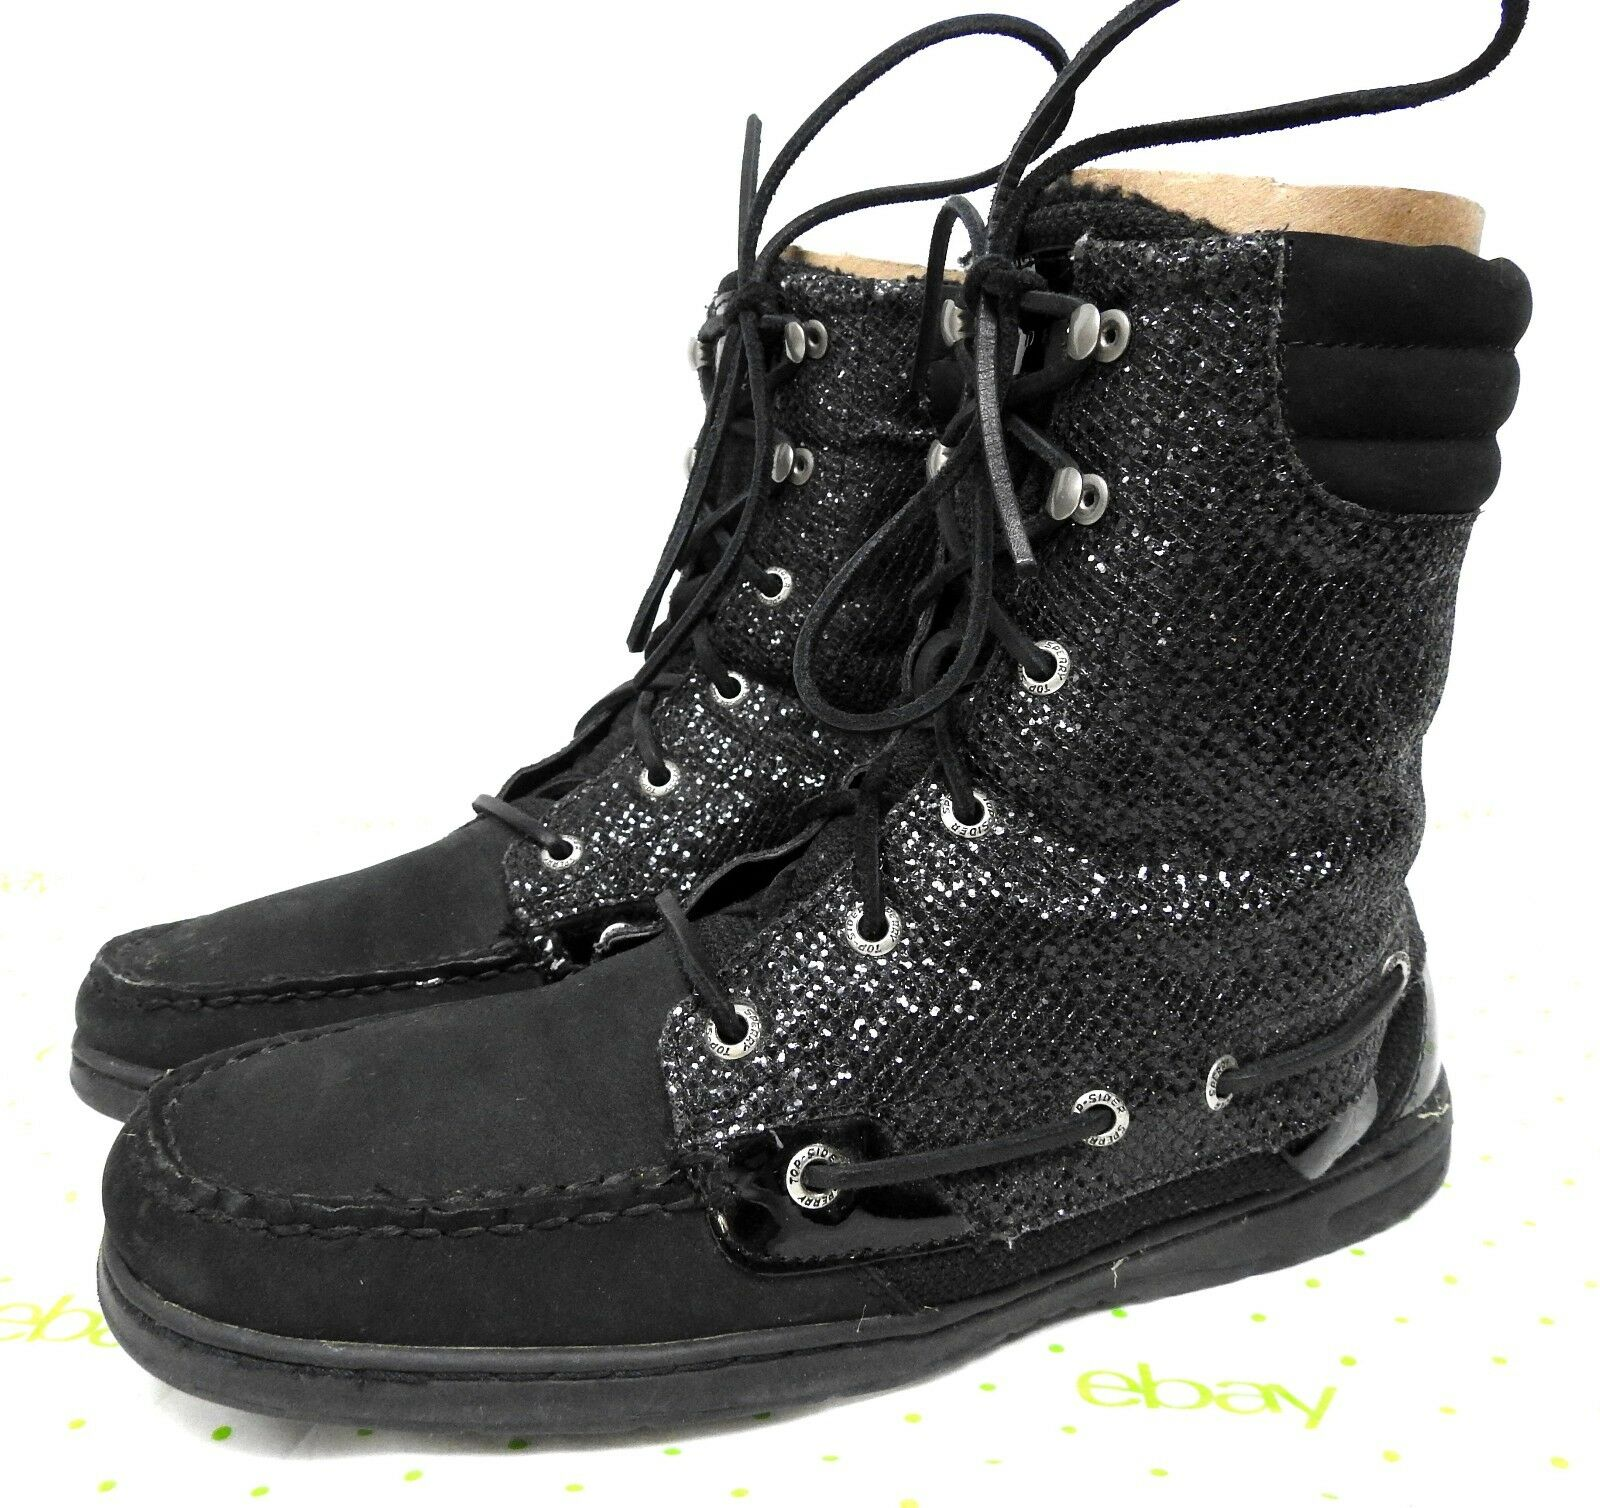 Sperry Women's 10 M Top Sider Hikerfish Black Glitter Boat Boots #9173683